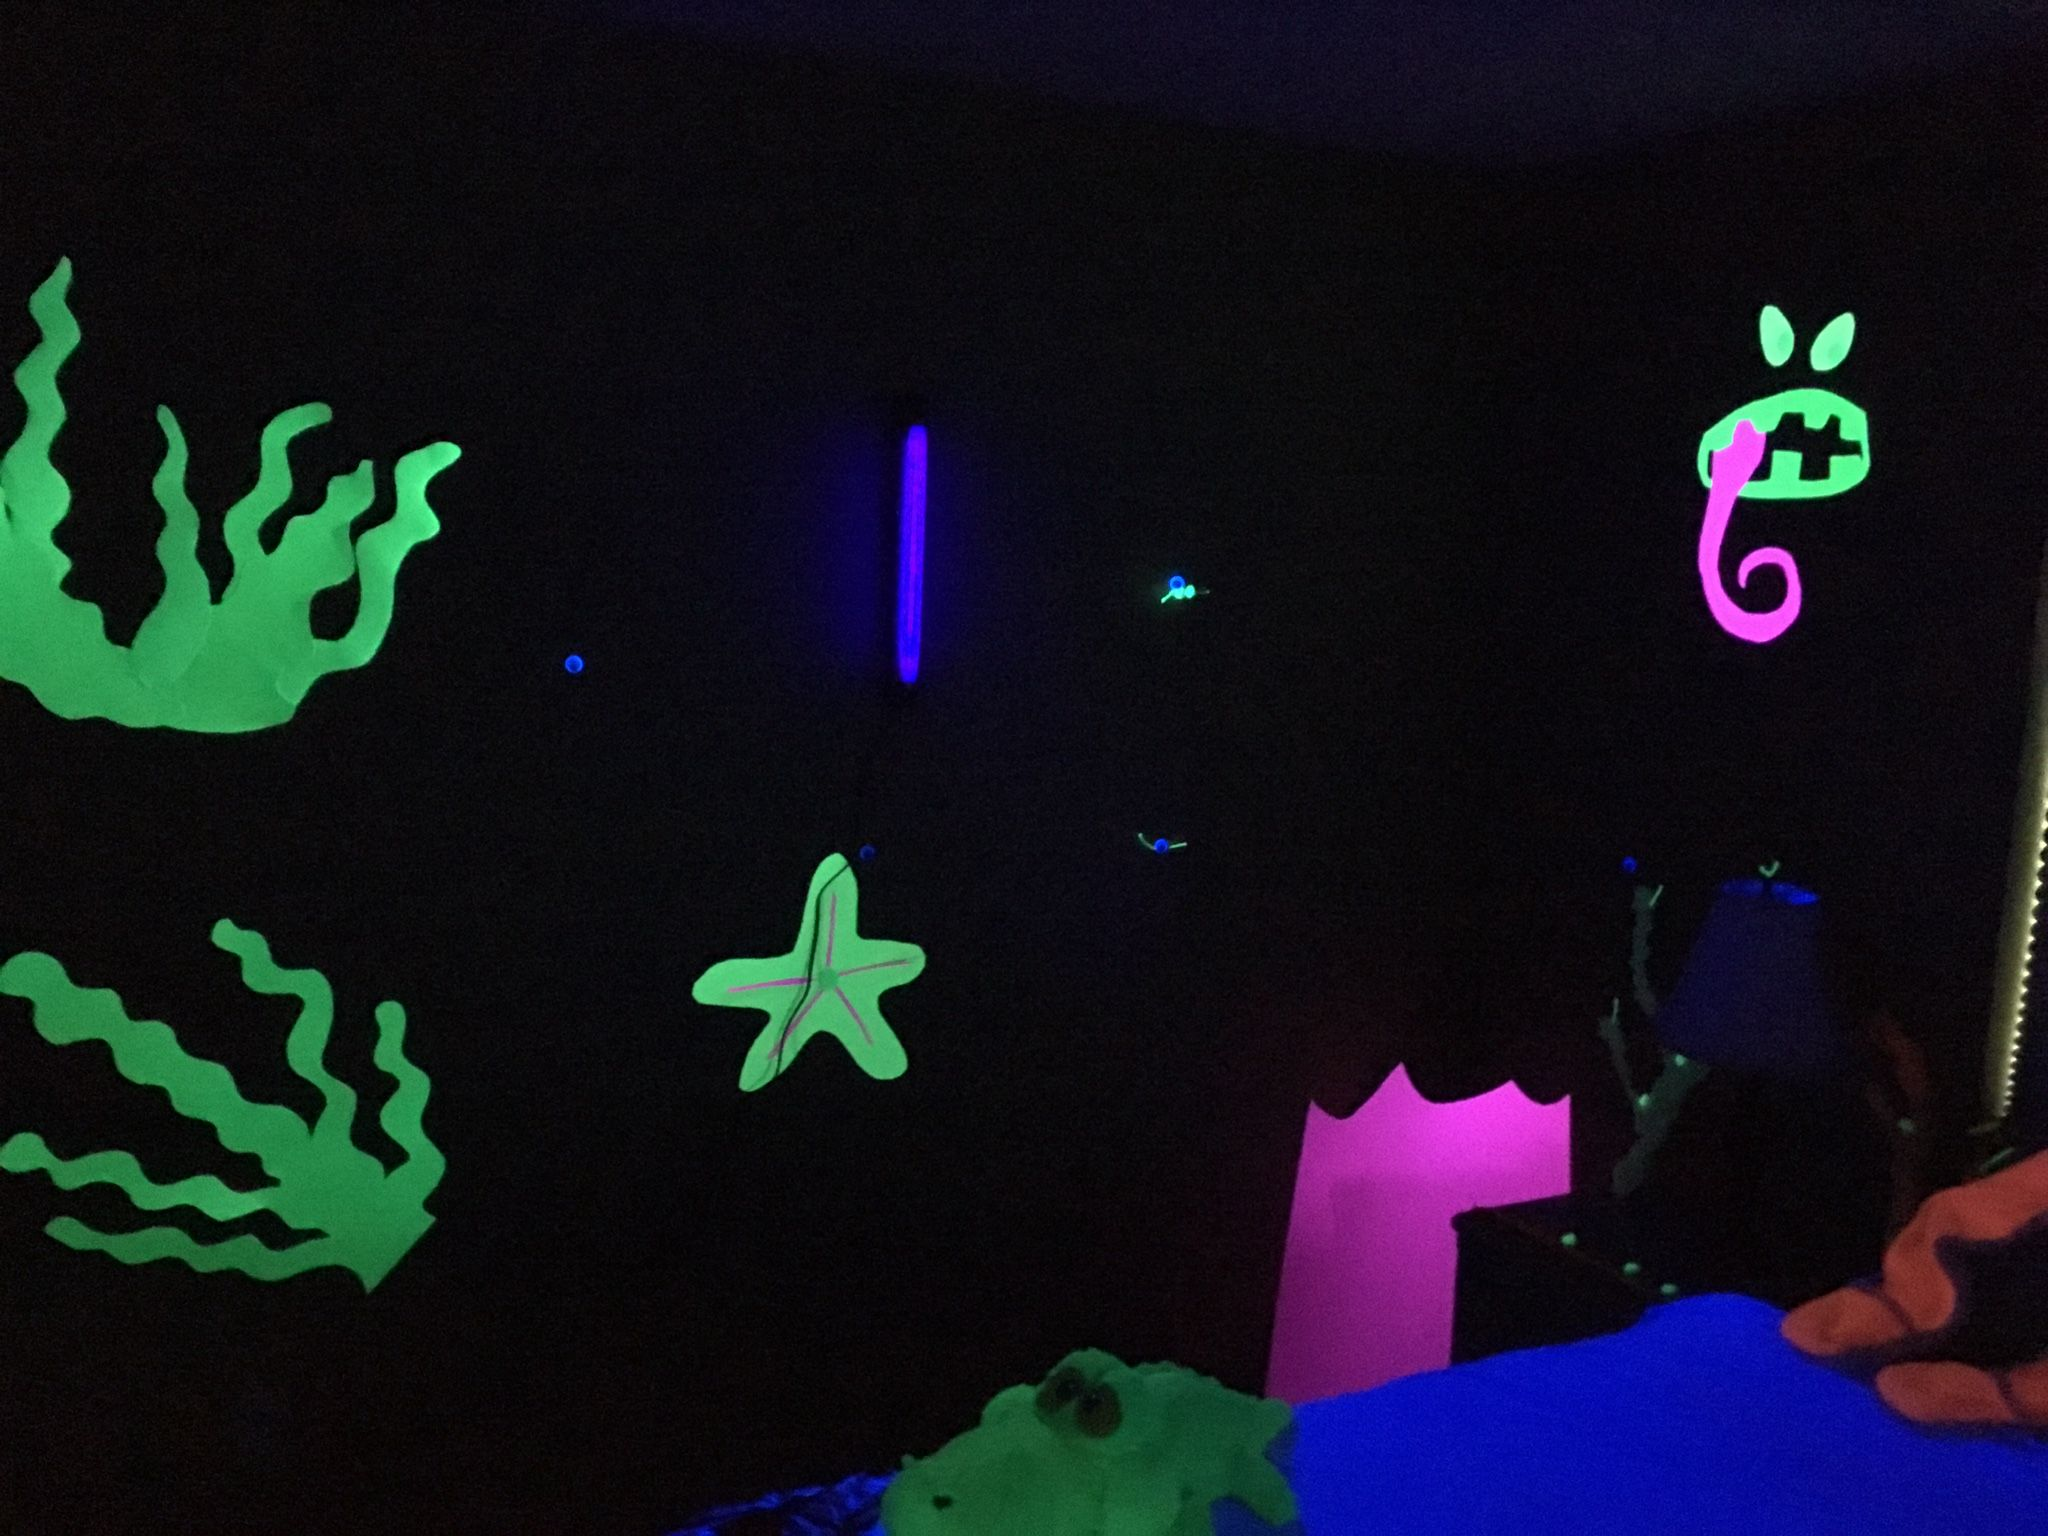 moana party realm of monsters tamatoa lair black light room party pinterest. Black Bedroom Furniture Sets. Home Design Ideas